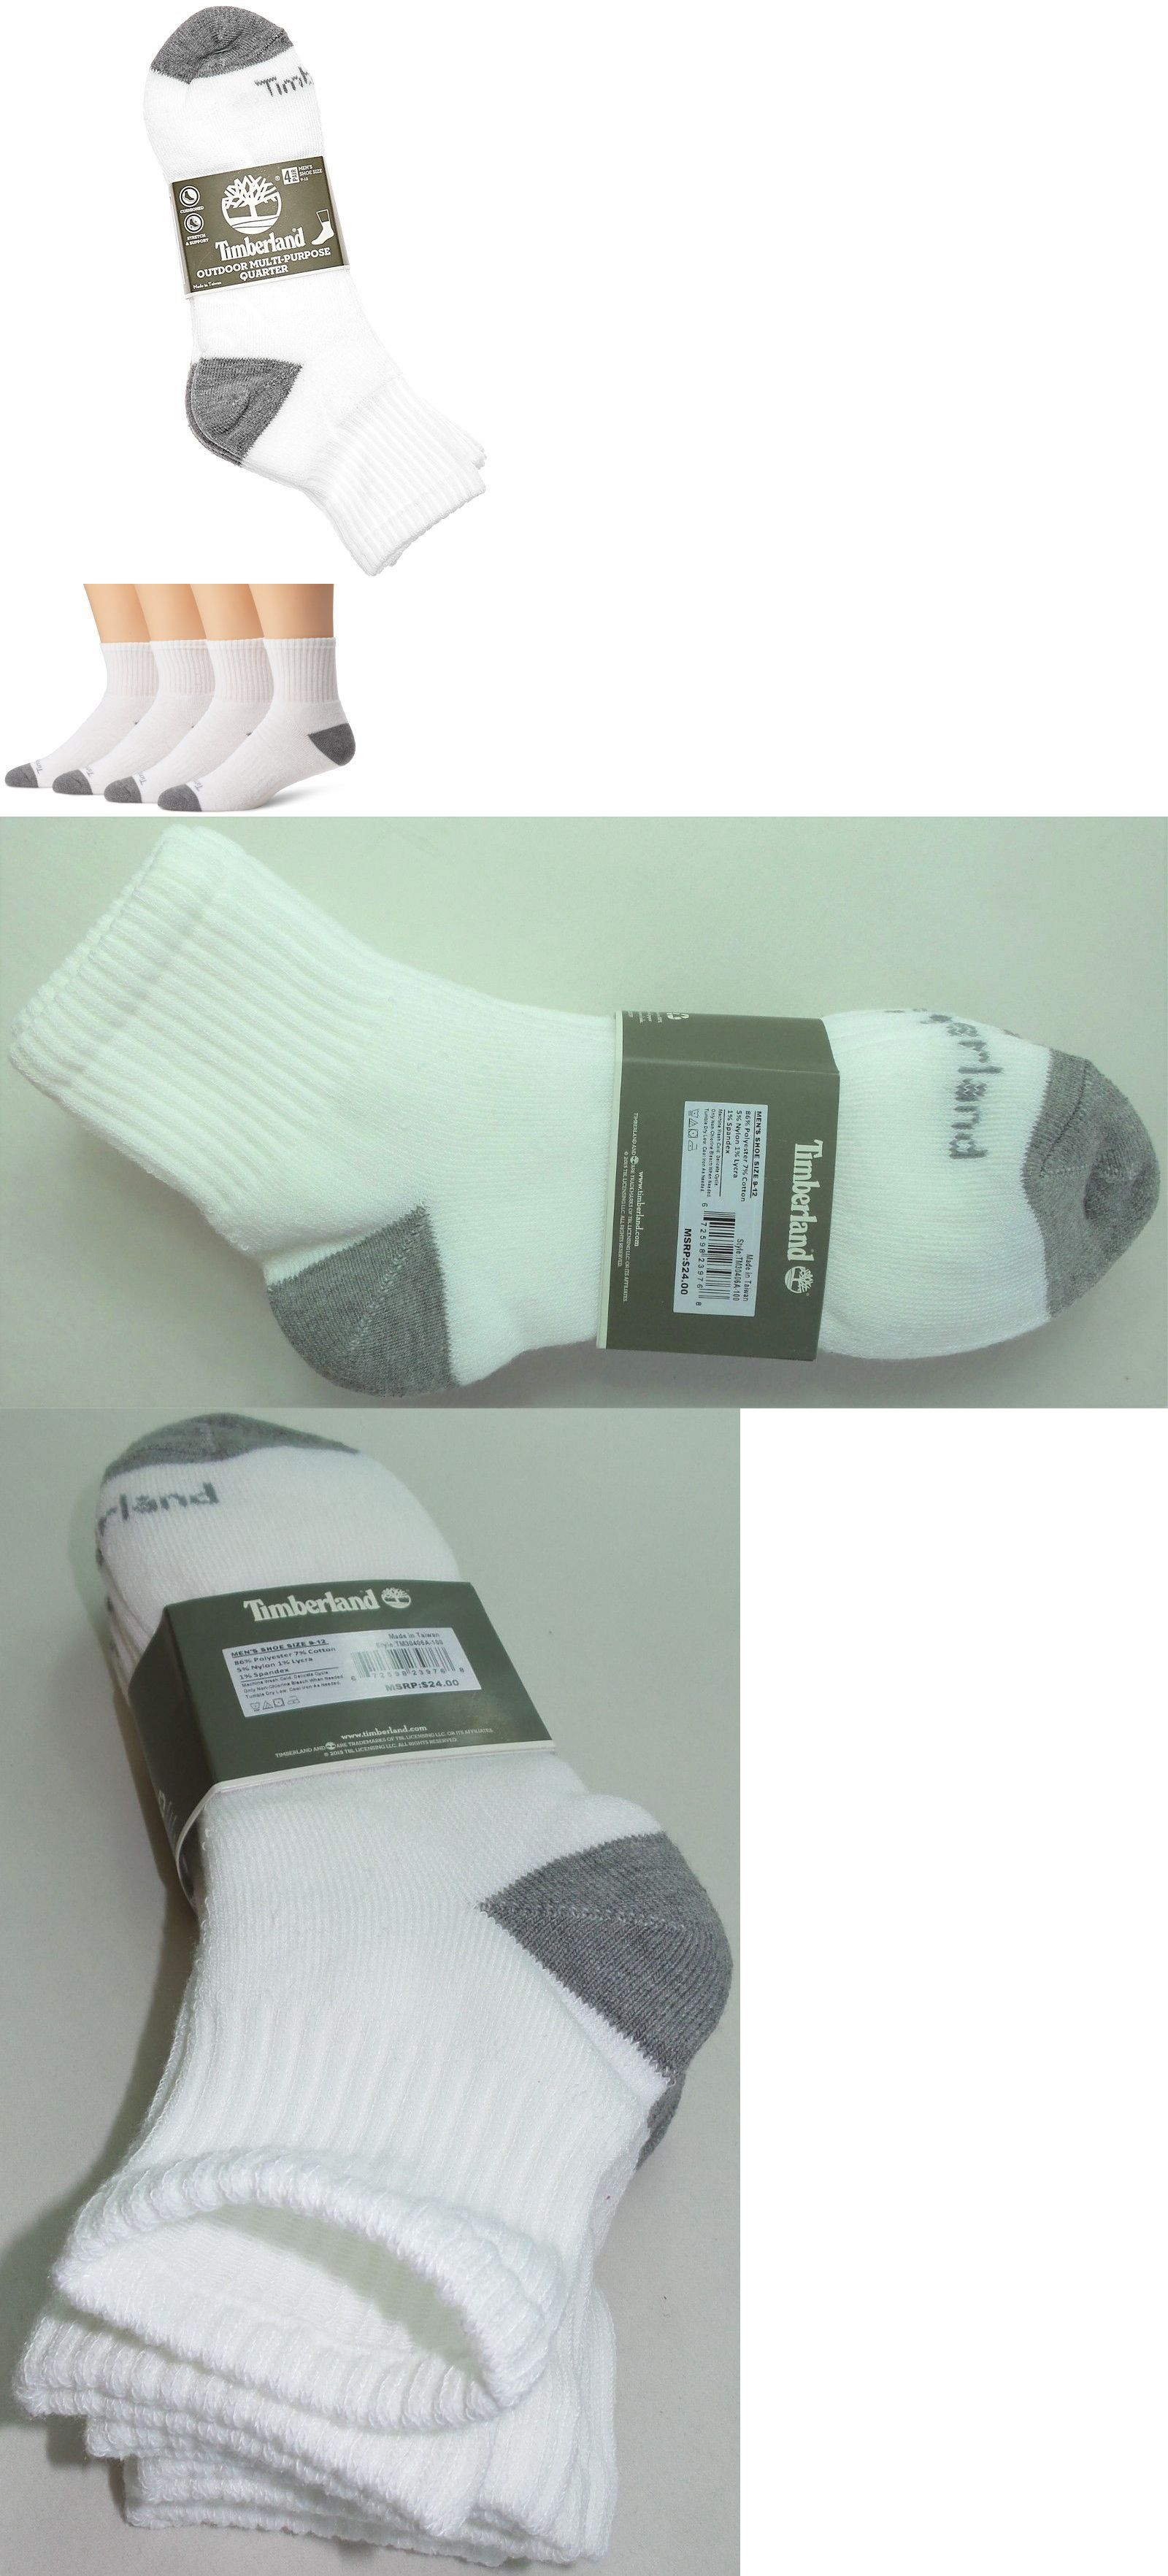 59f5febbc52d1 Socks 11511: Timberland Mens Quarter Crew Socks 4 Pair Pack Large White  Outdoor Cushioned New -> BUY IT NOW ONLY: $14.95 on #eBay #socks #timberland  ...